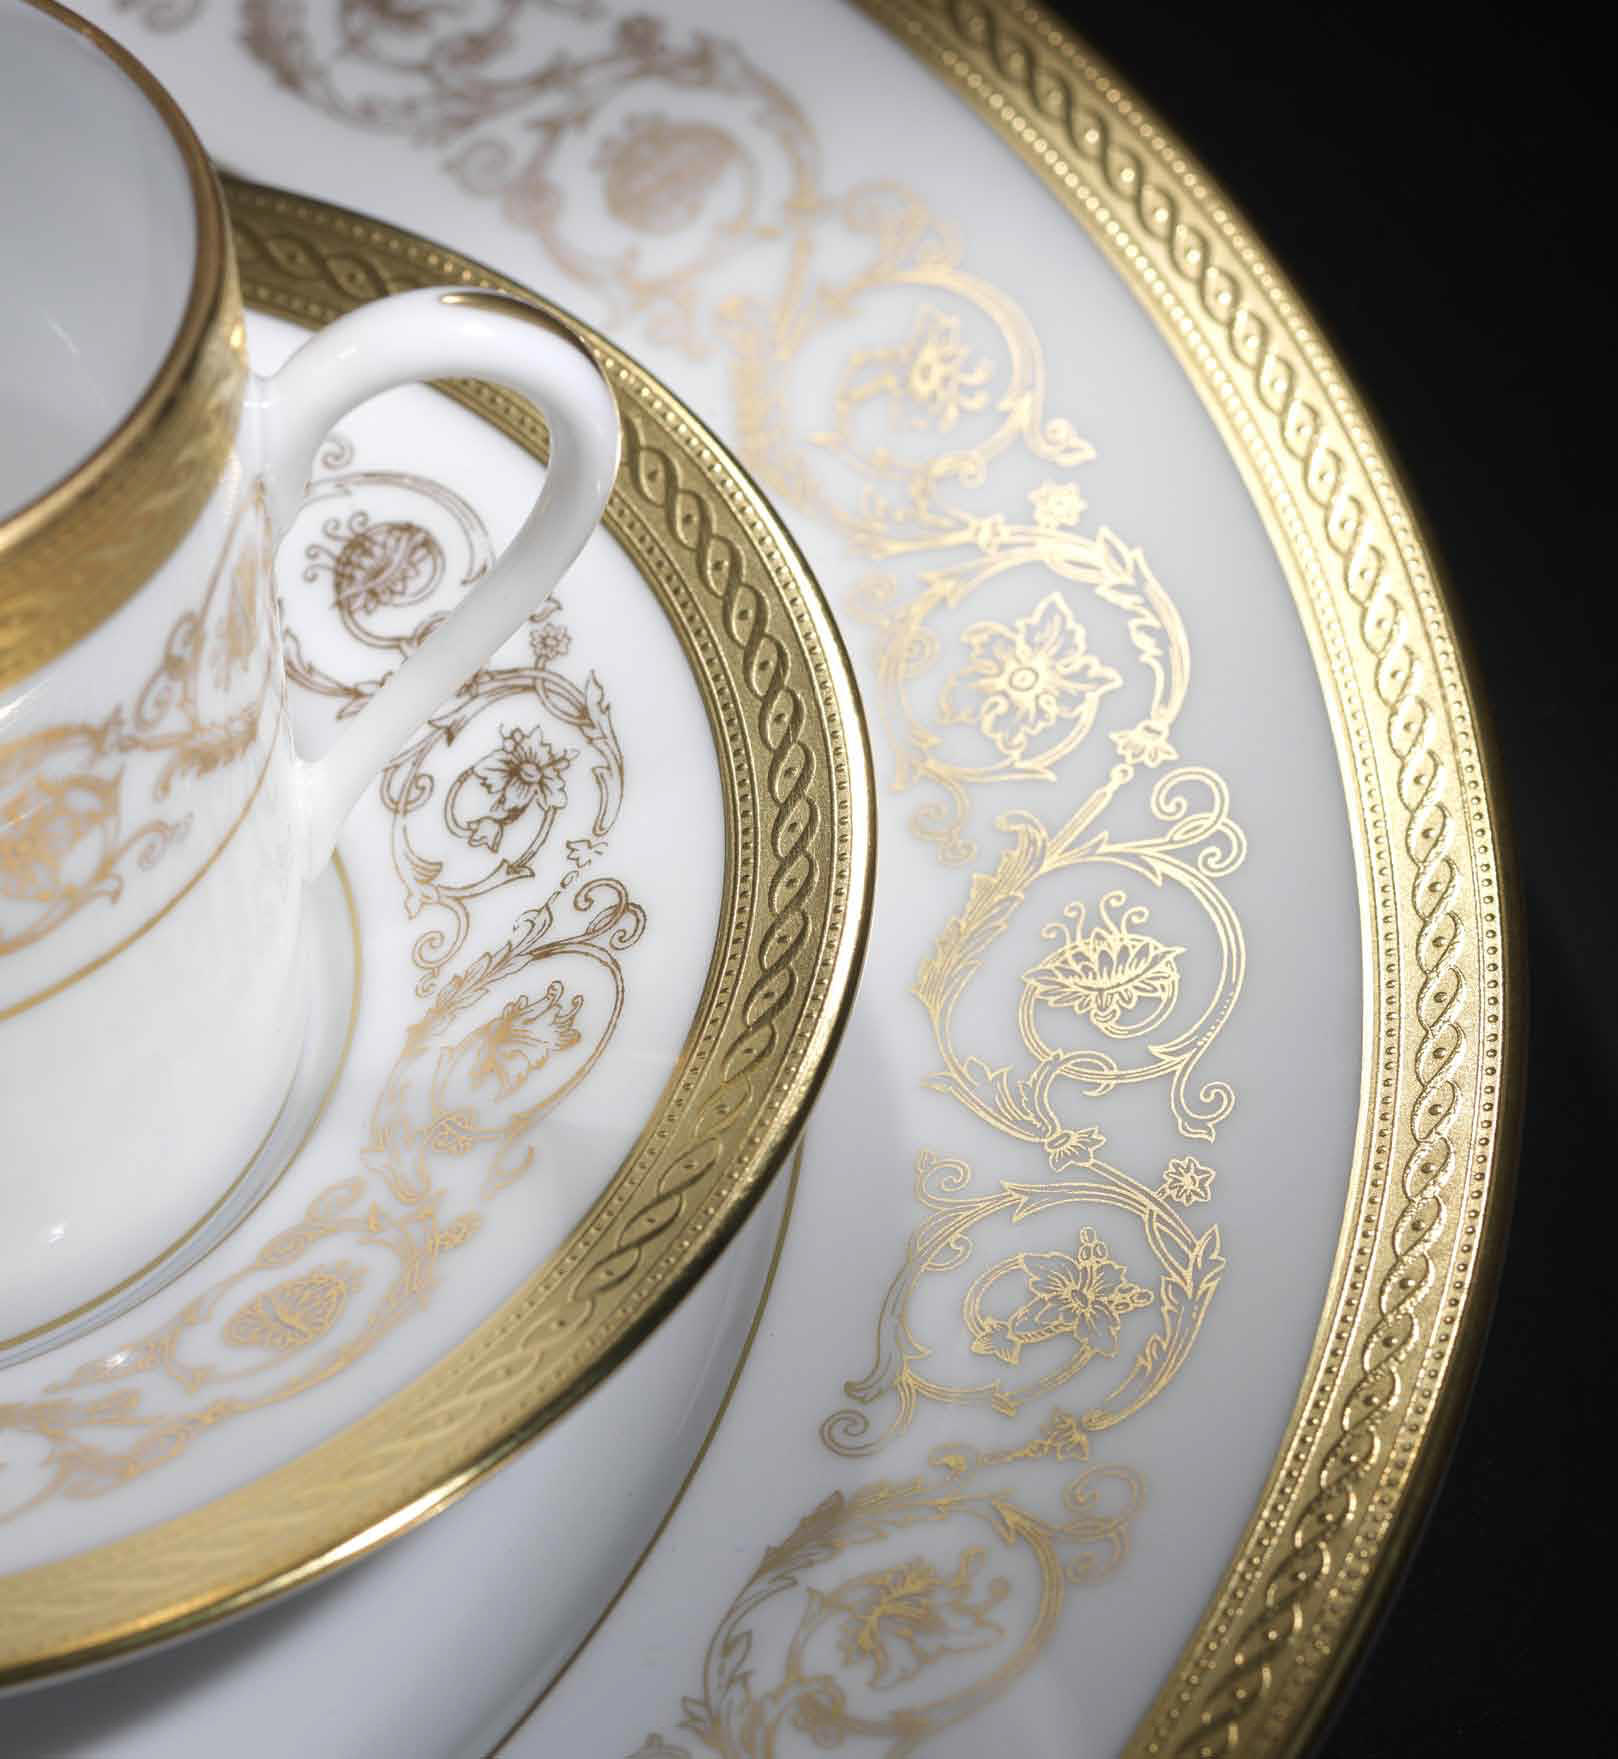 Fine gold and platinum dinnerware Ambassade by J. Seignolles & Gold u0026 Platinum dinnerware| Ambassade dinnerware